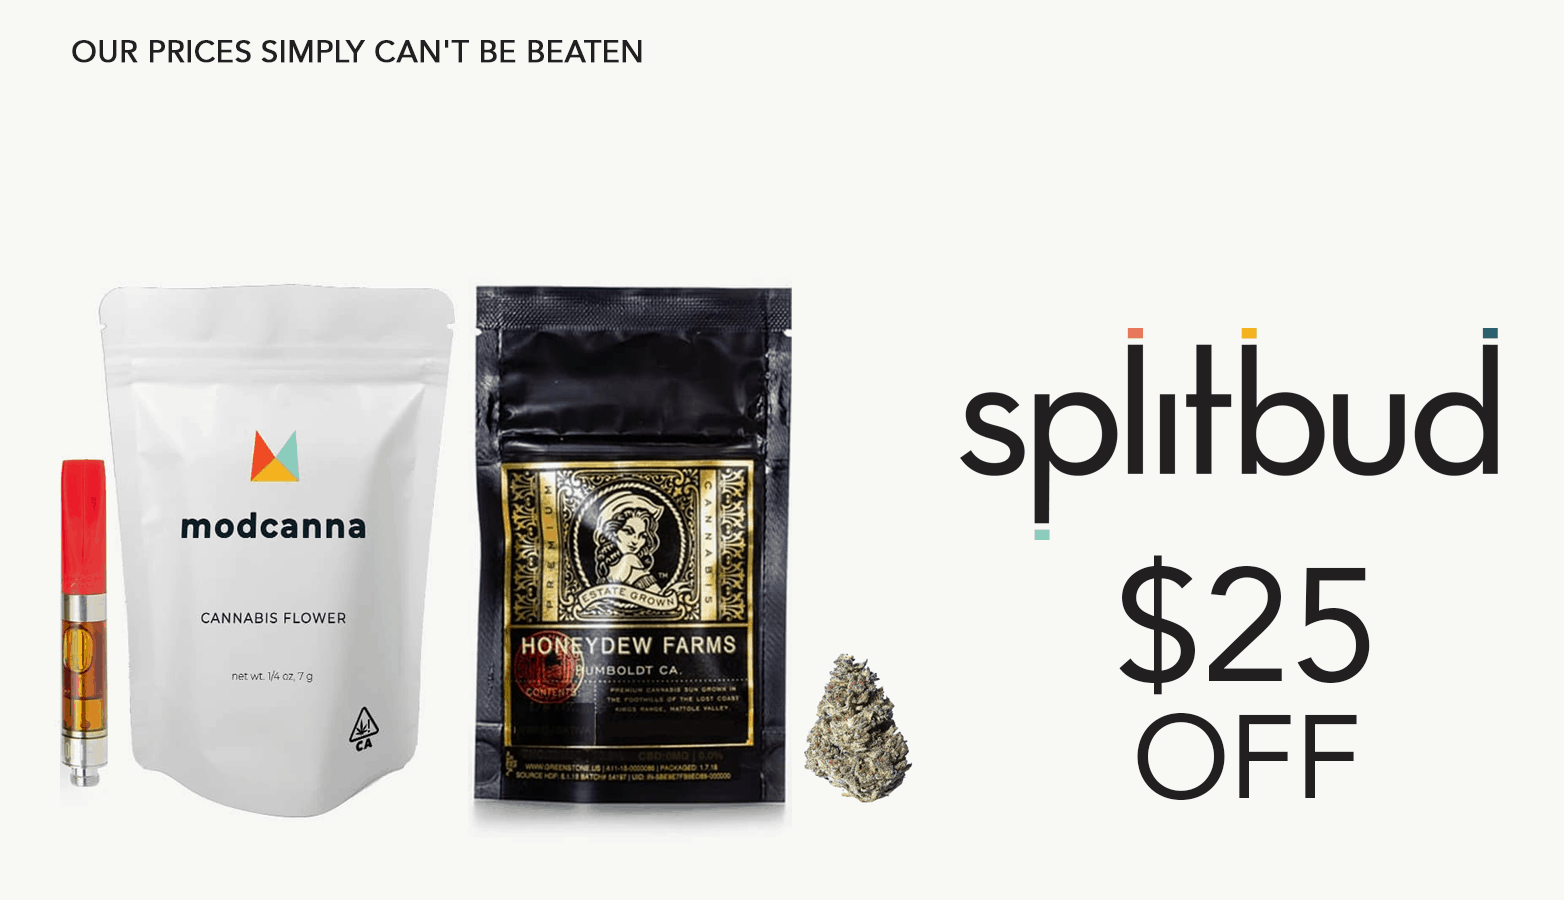 SplitBud CBD Coupon Code Website